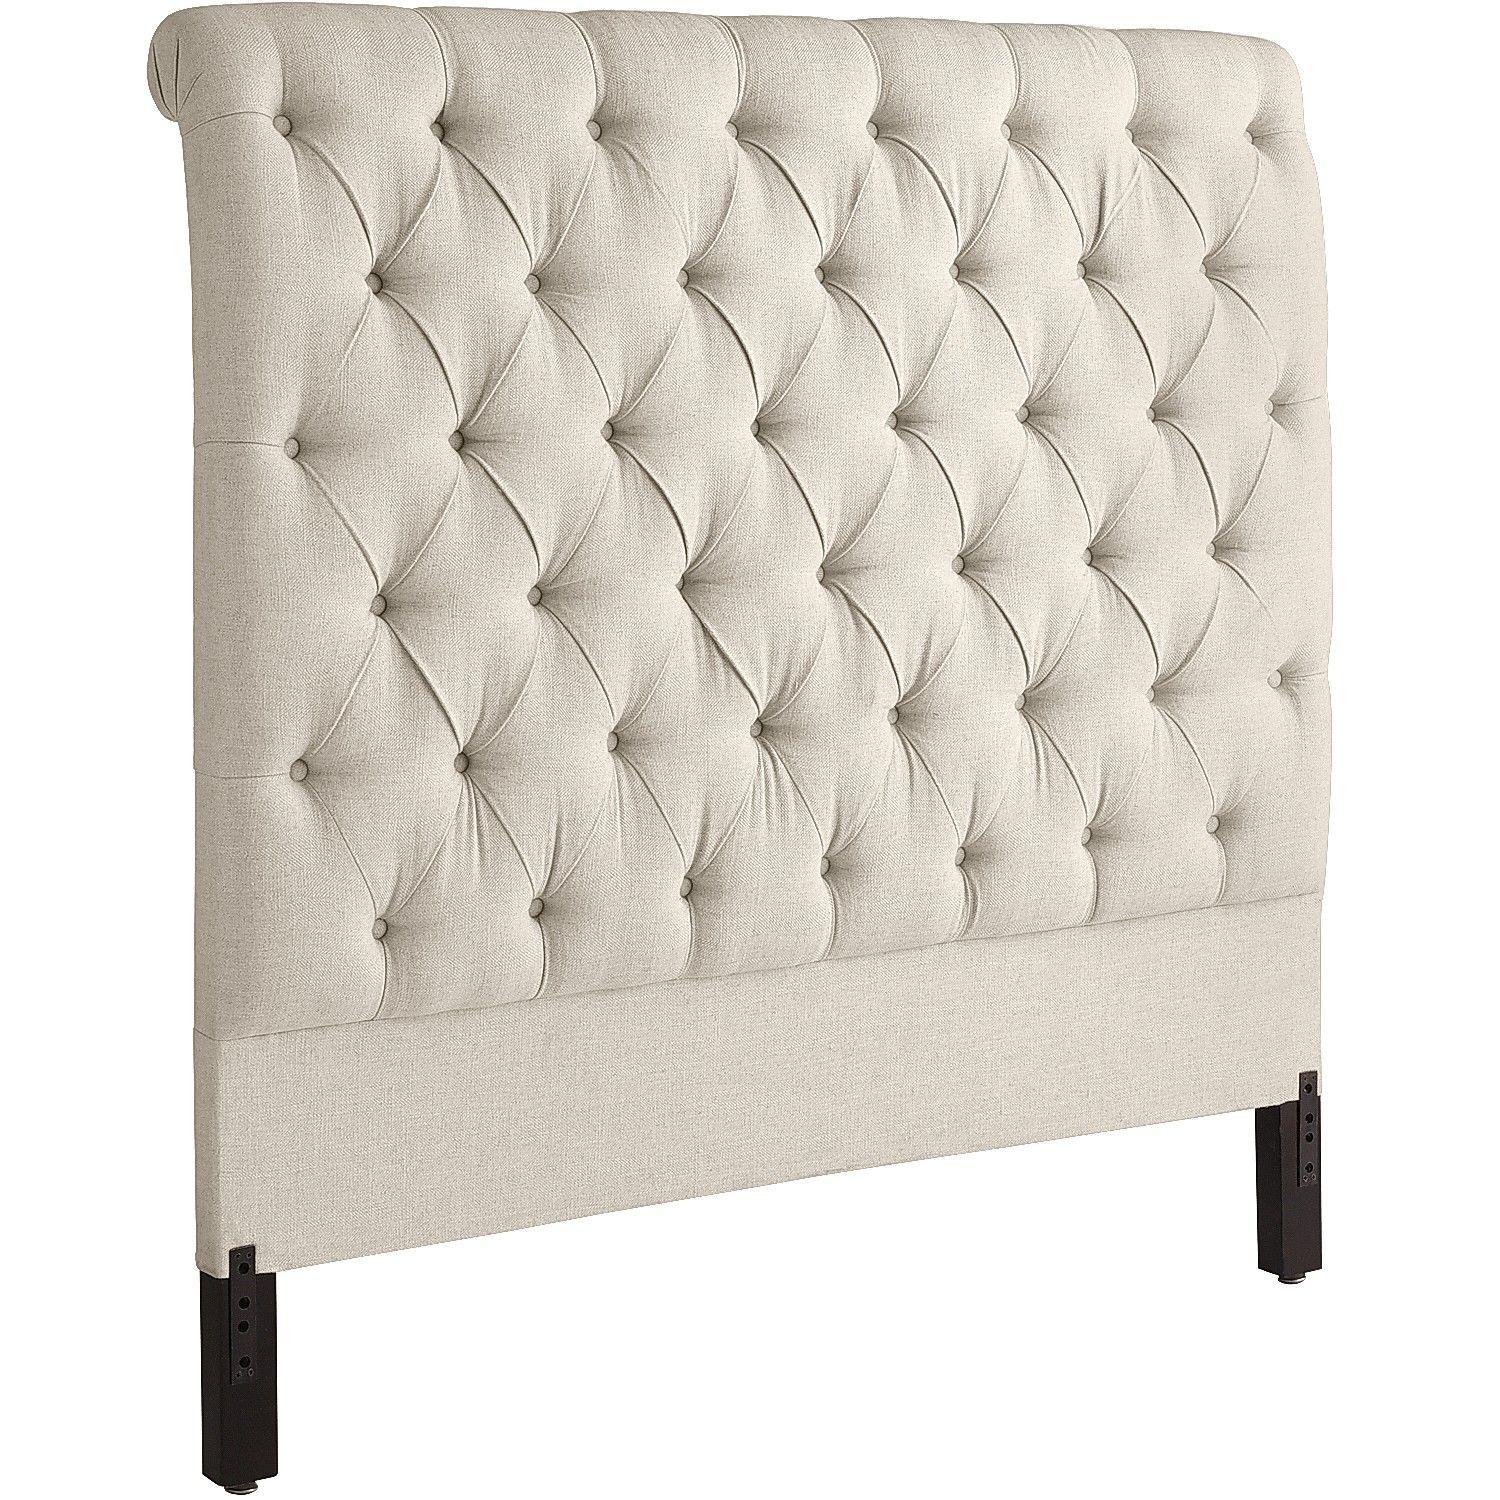 Pier Bedroom Furniture Audrey Upholstered Flax Headboard Colors Pier 1 Imports And